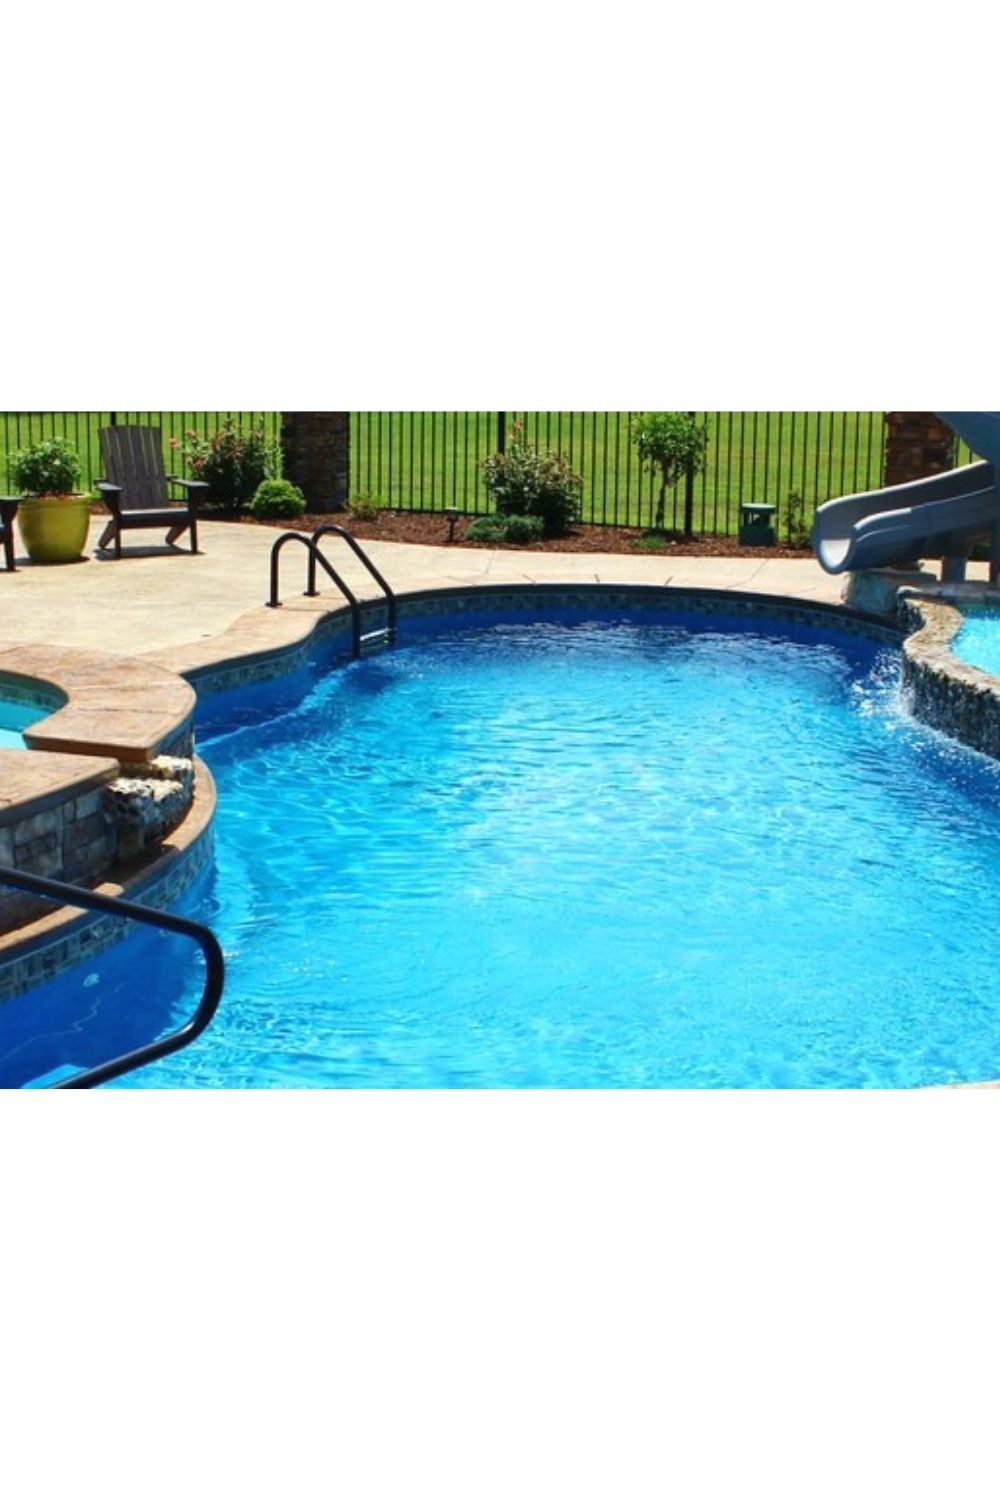 Amazing Facts You Must Know About Pool Remodeling Cool Pools Swimming Pool Maintenance Pool Remodel